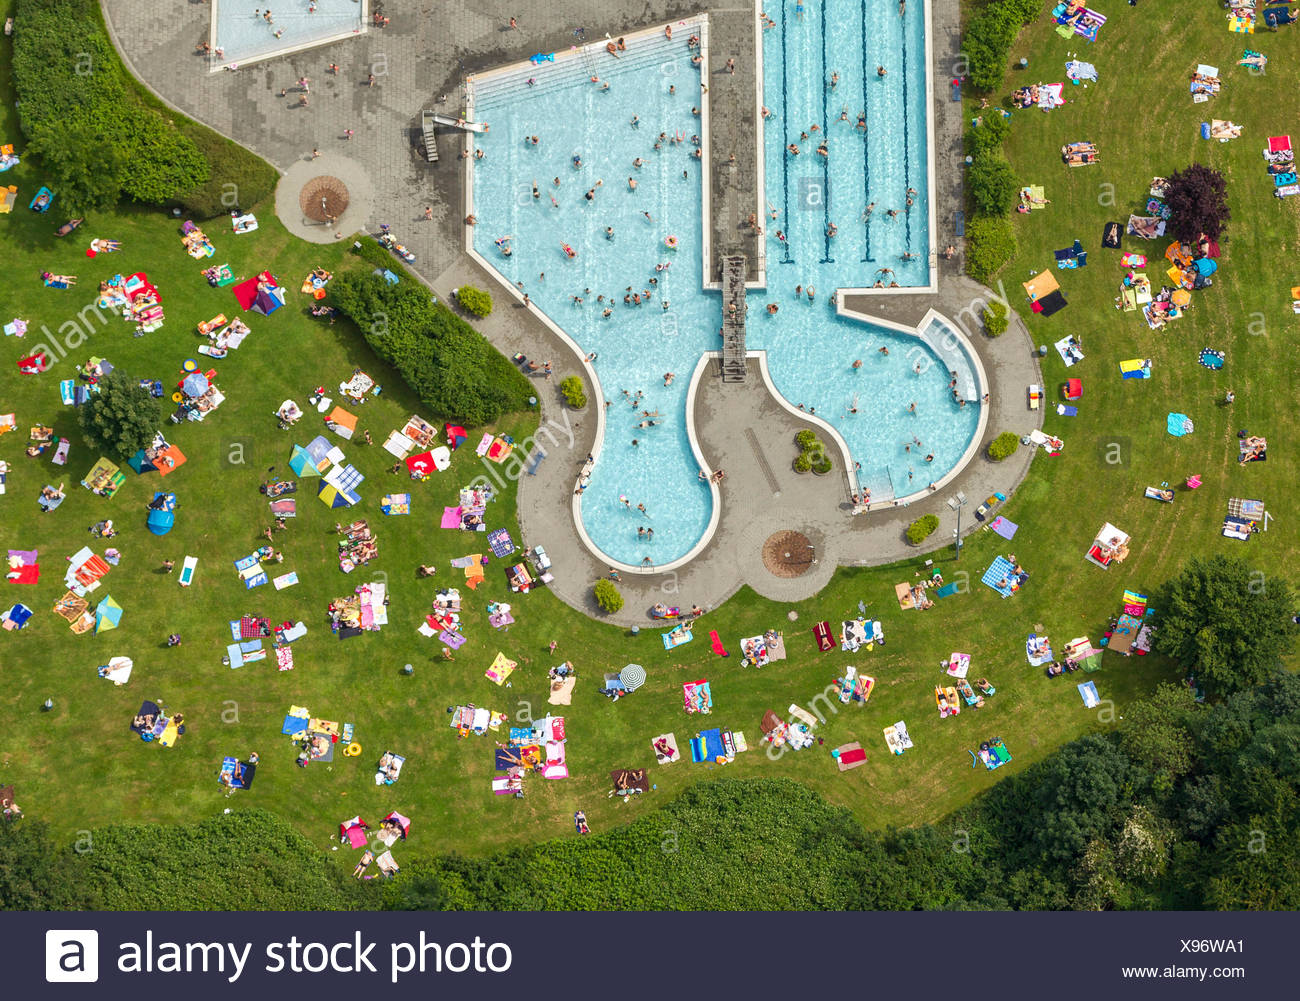 Aerial view, lawn for sunbathing with the southern pool of the outdoor swimming centre, Herne, Ruhr Area - Stock Image